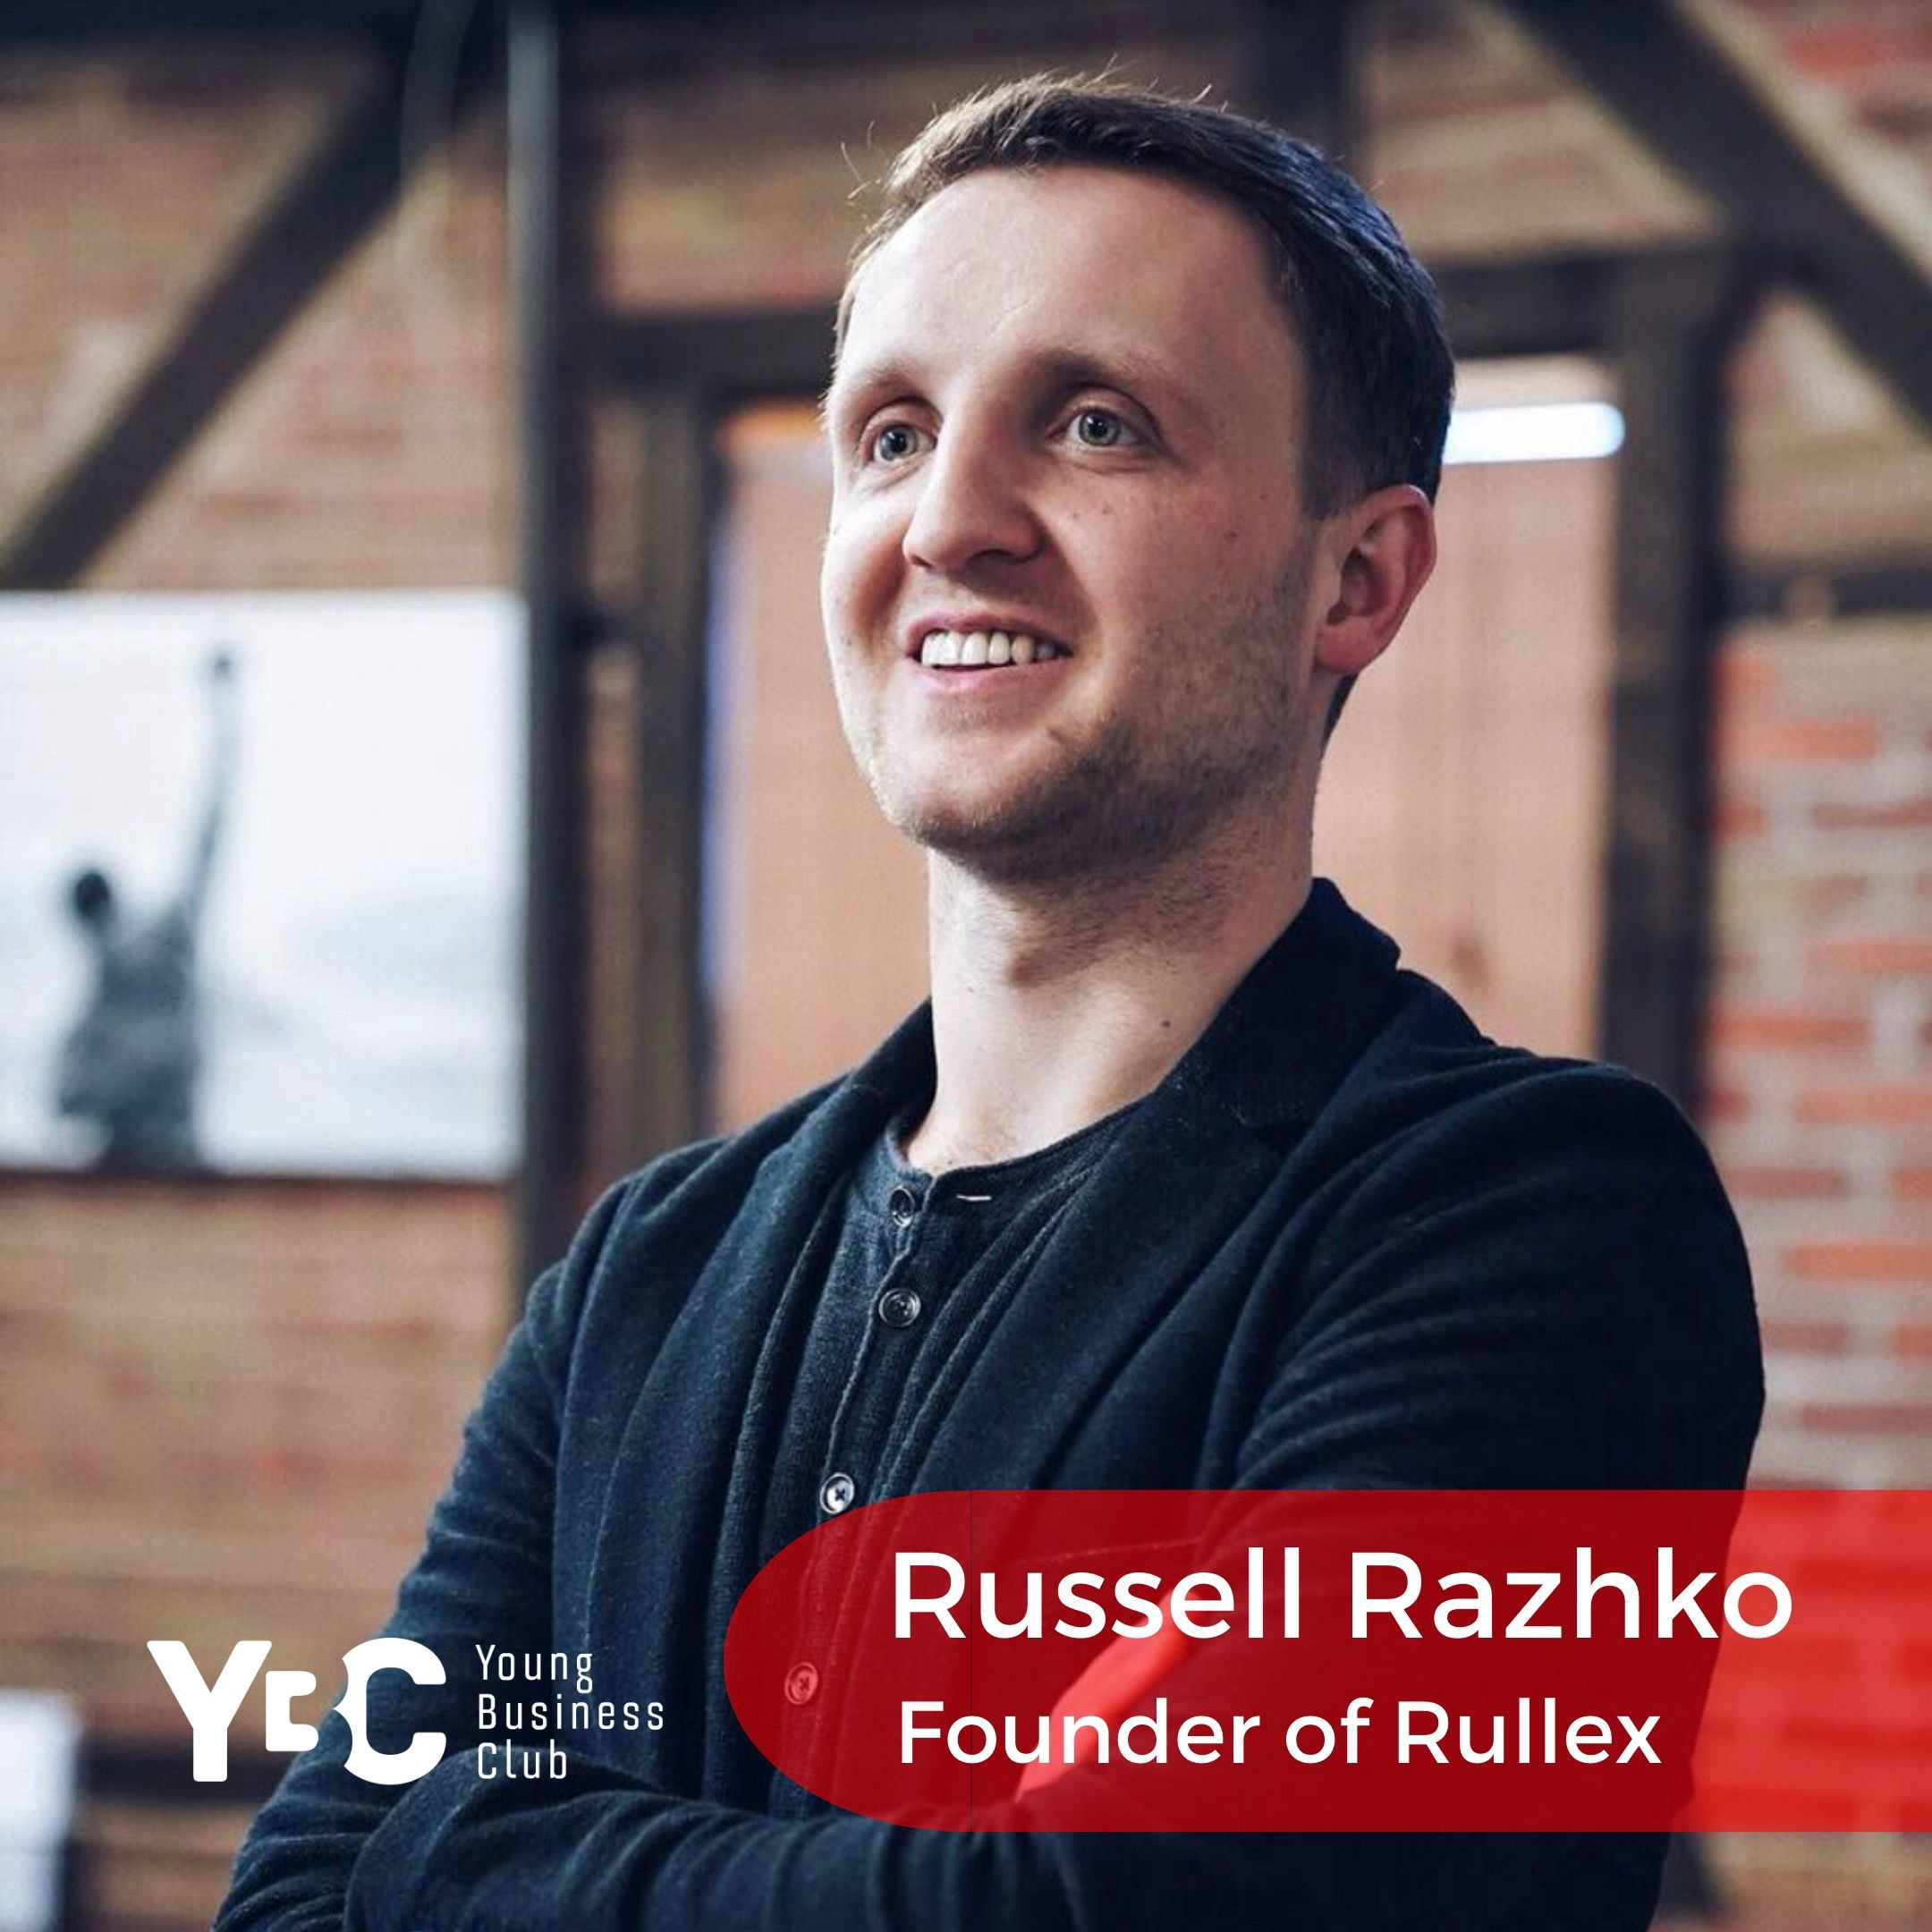 Russel Razhko, co-founder and CEO of telecom company Rullex, member of the Young Business Club New York City